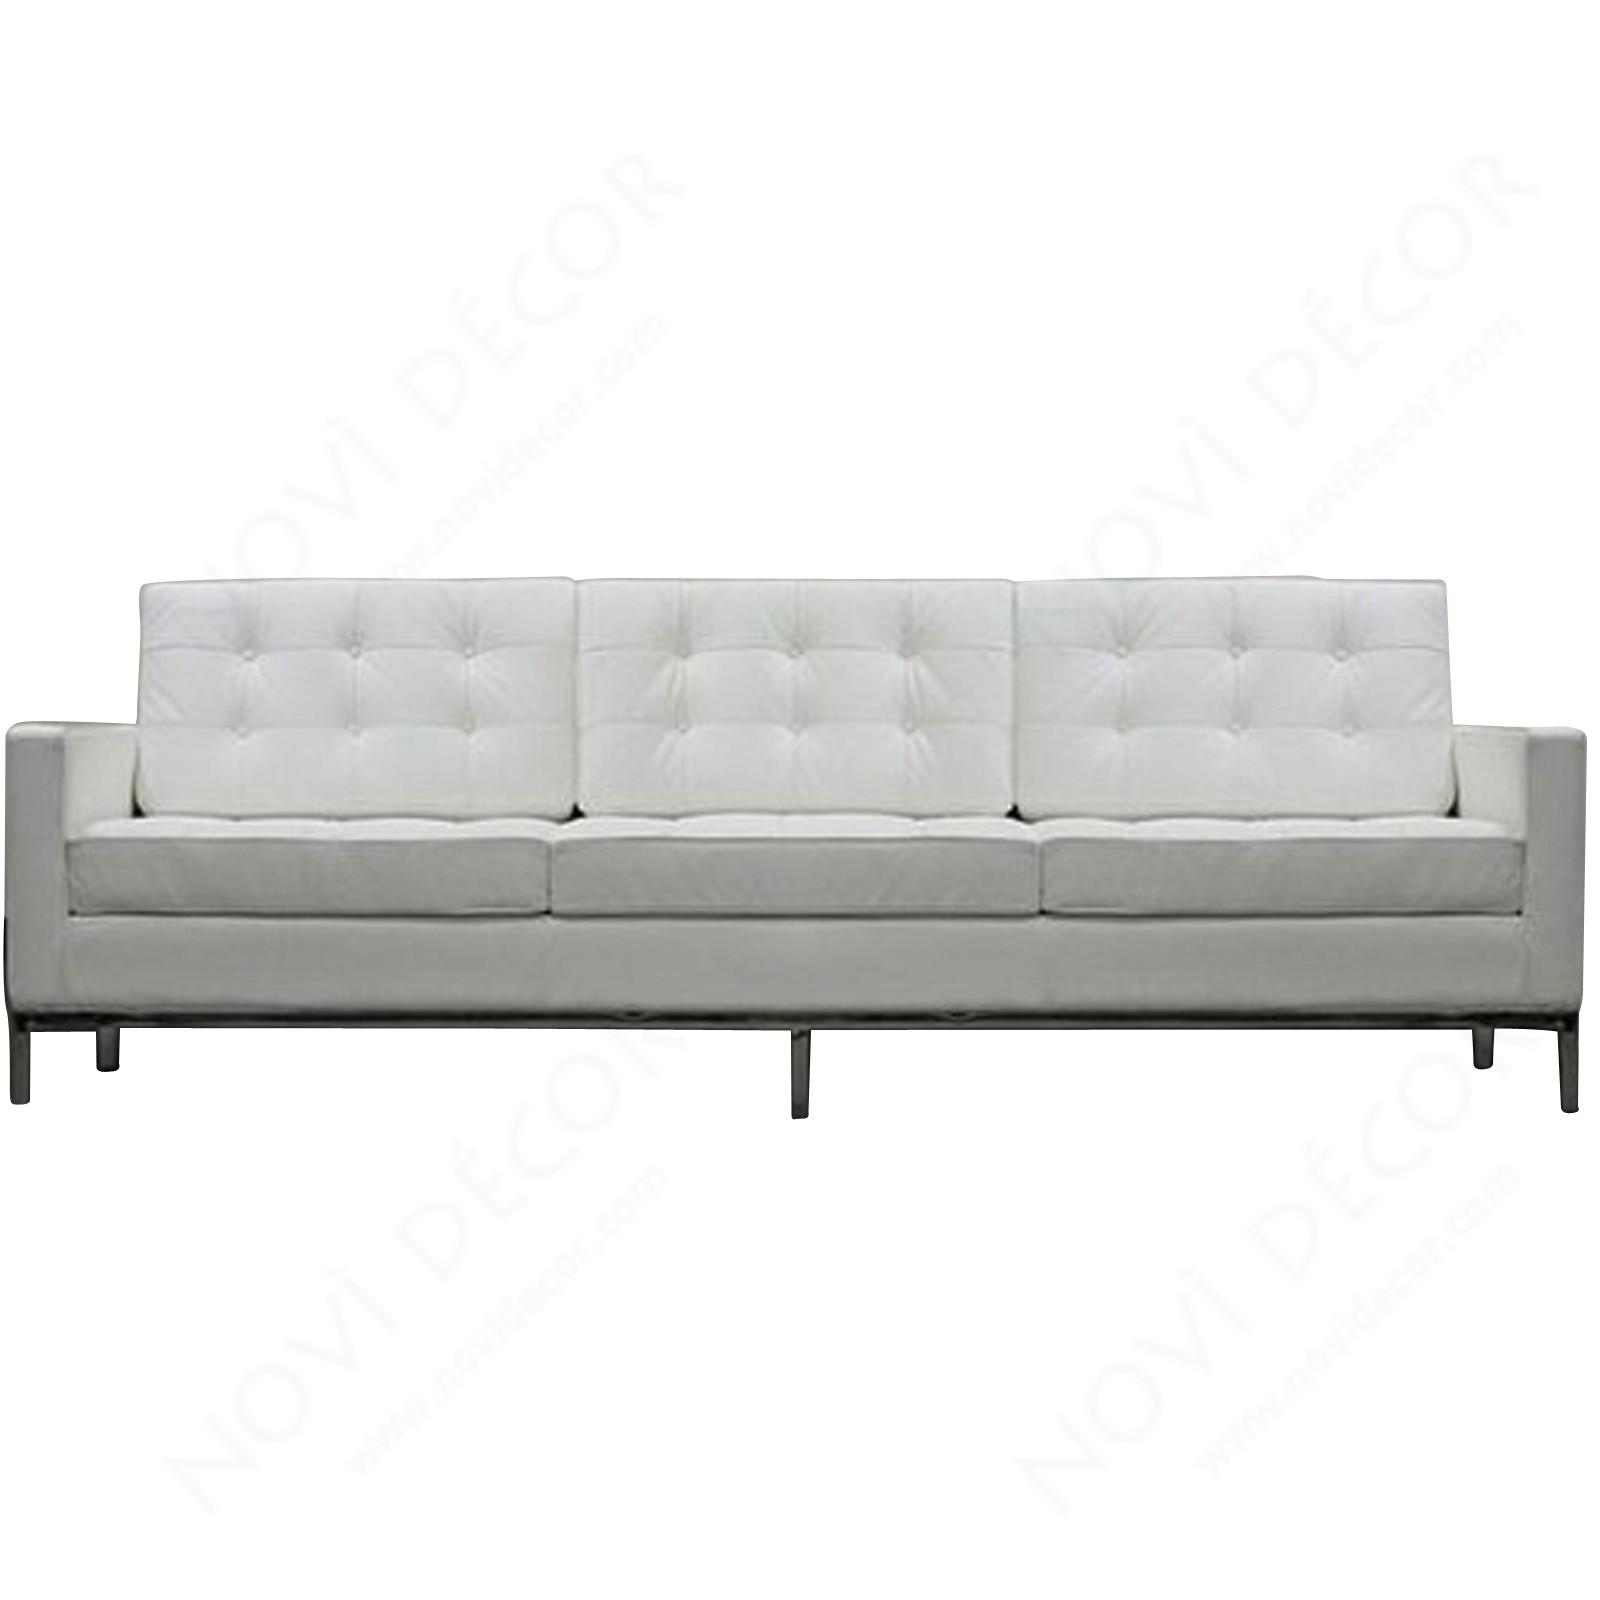 Florence Style Sofa (Multiple Colors) | Designer Reproduction Intended For Florence Large Sofas (Image 7 of 20)